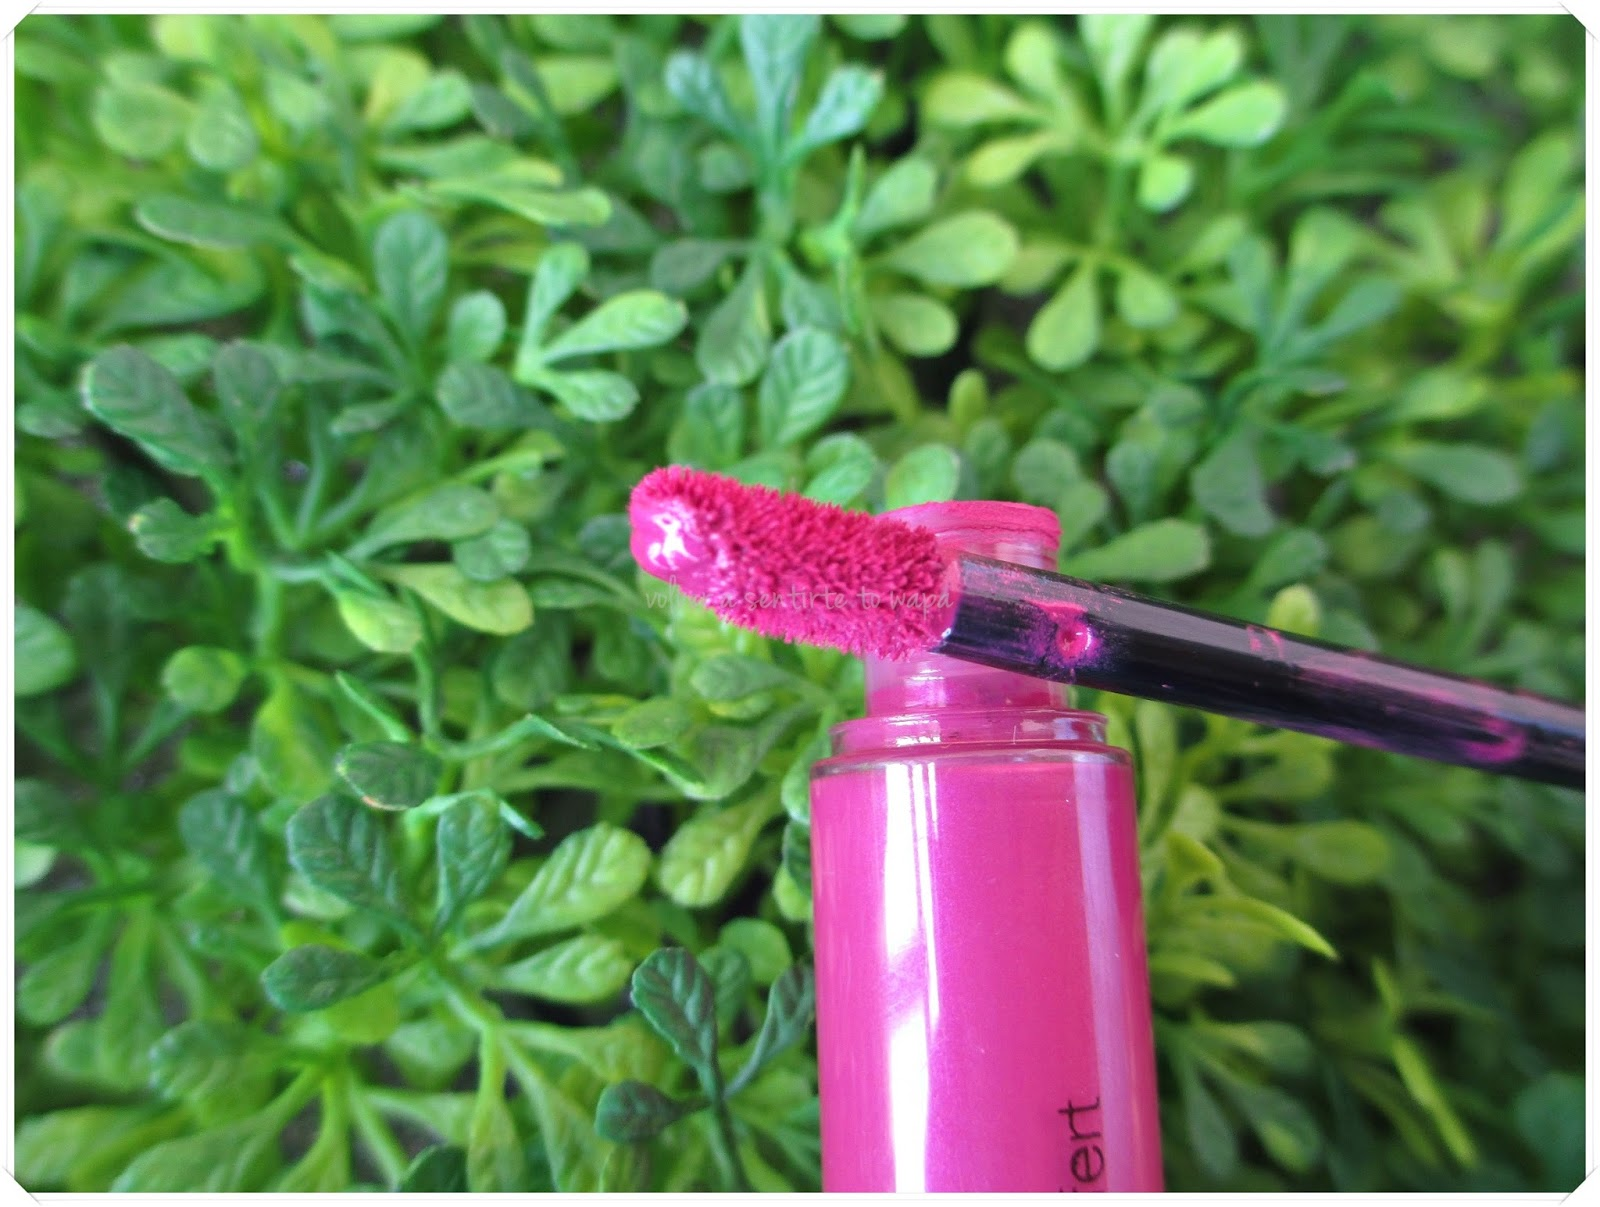 Cream Lip Stain 06 de Sephora: Review + Swatches